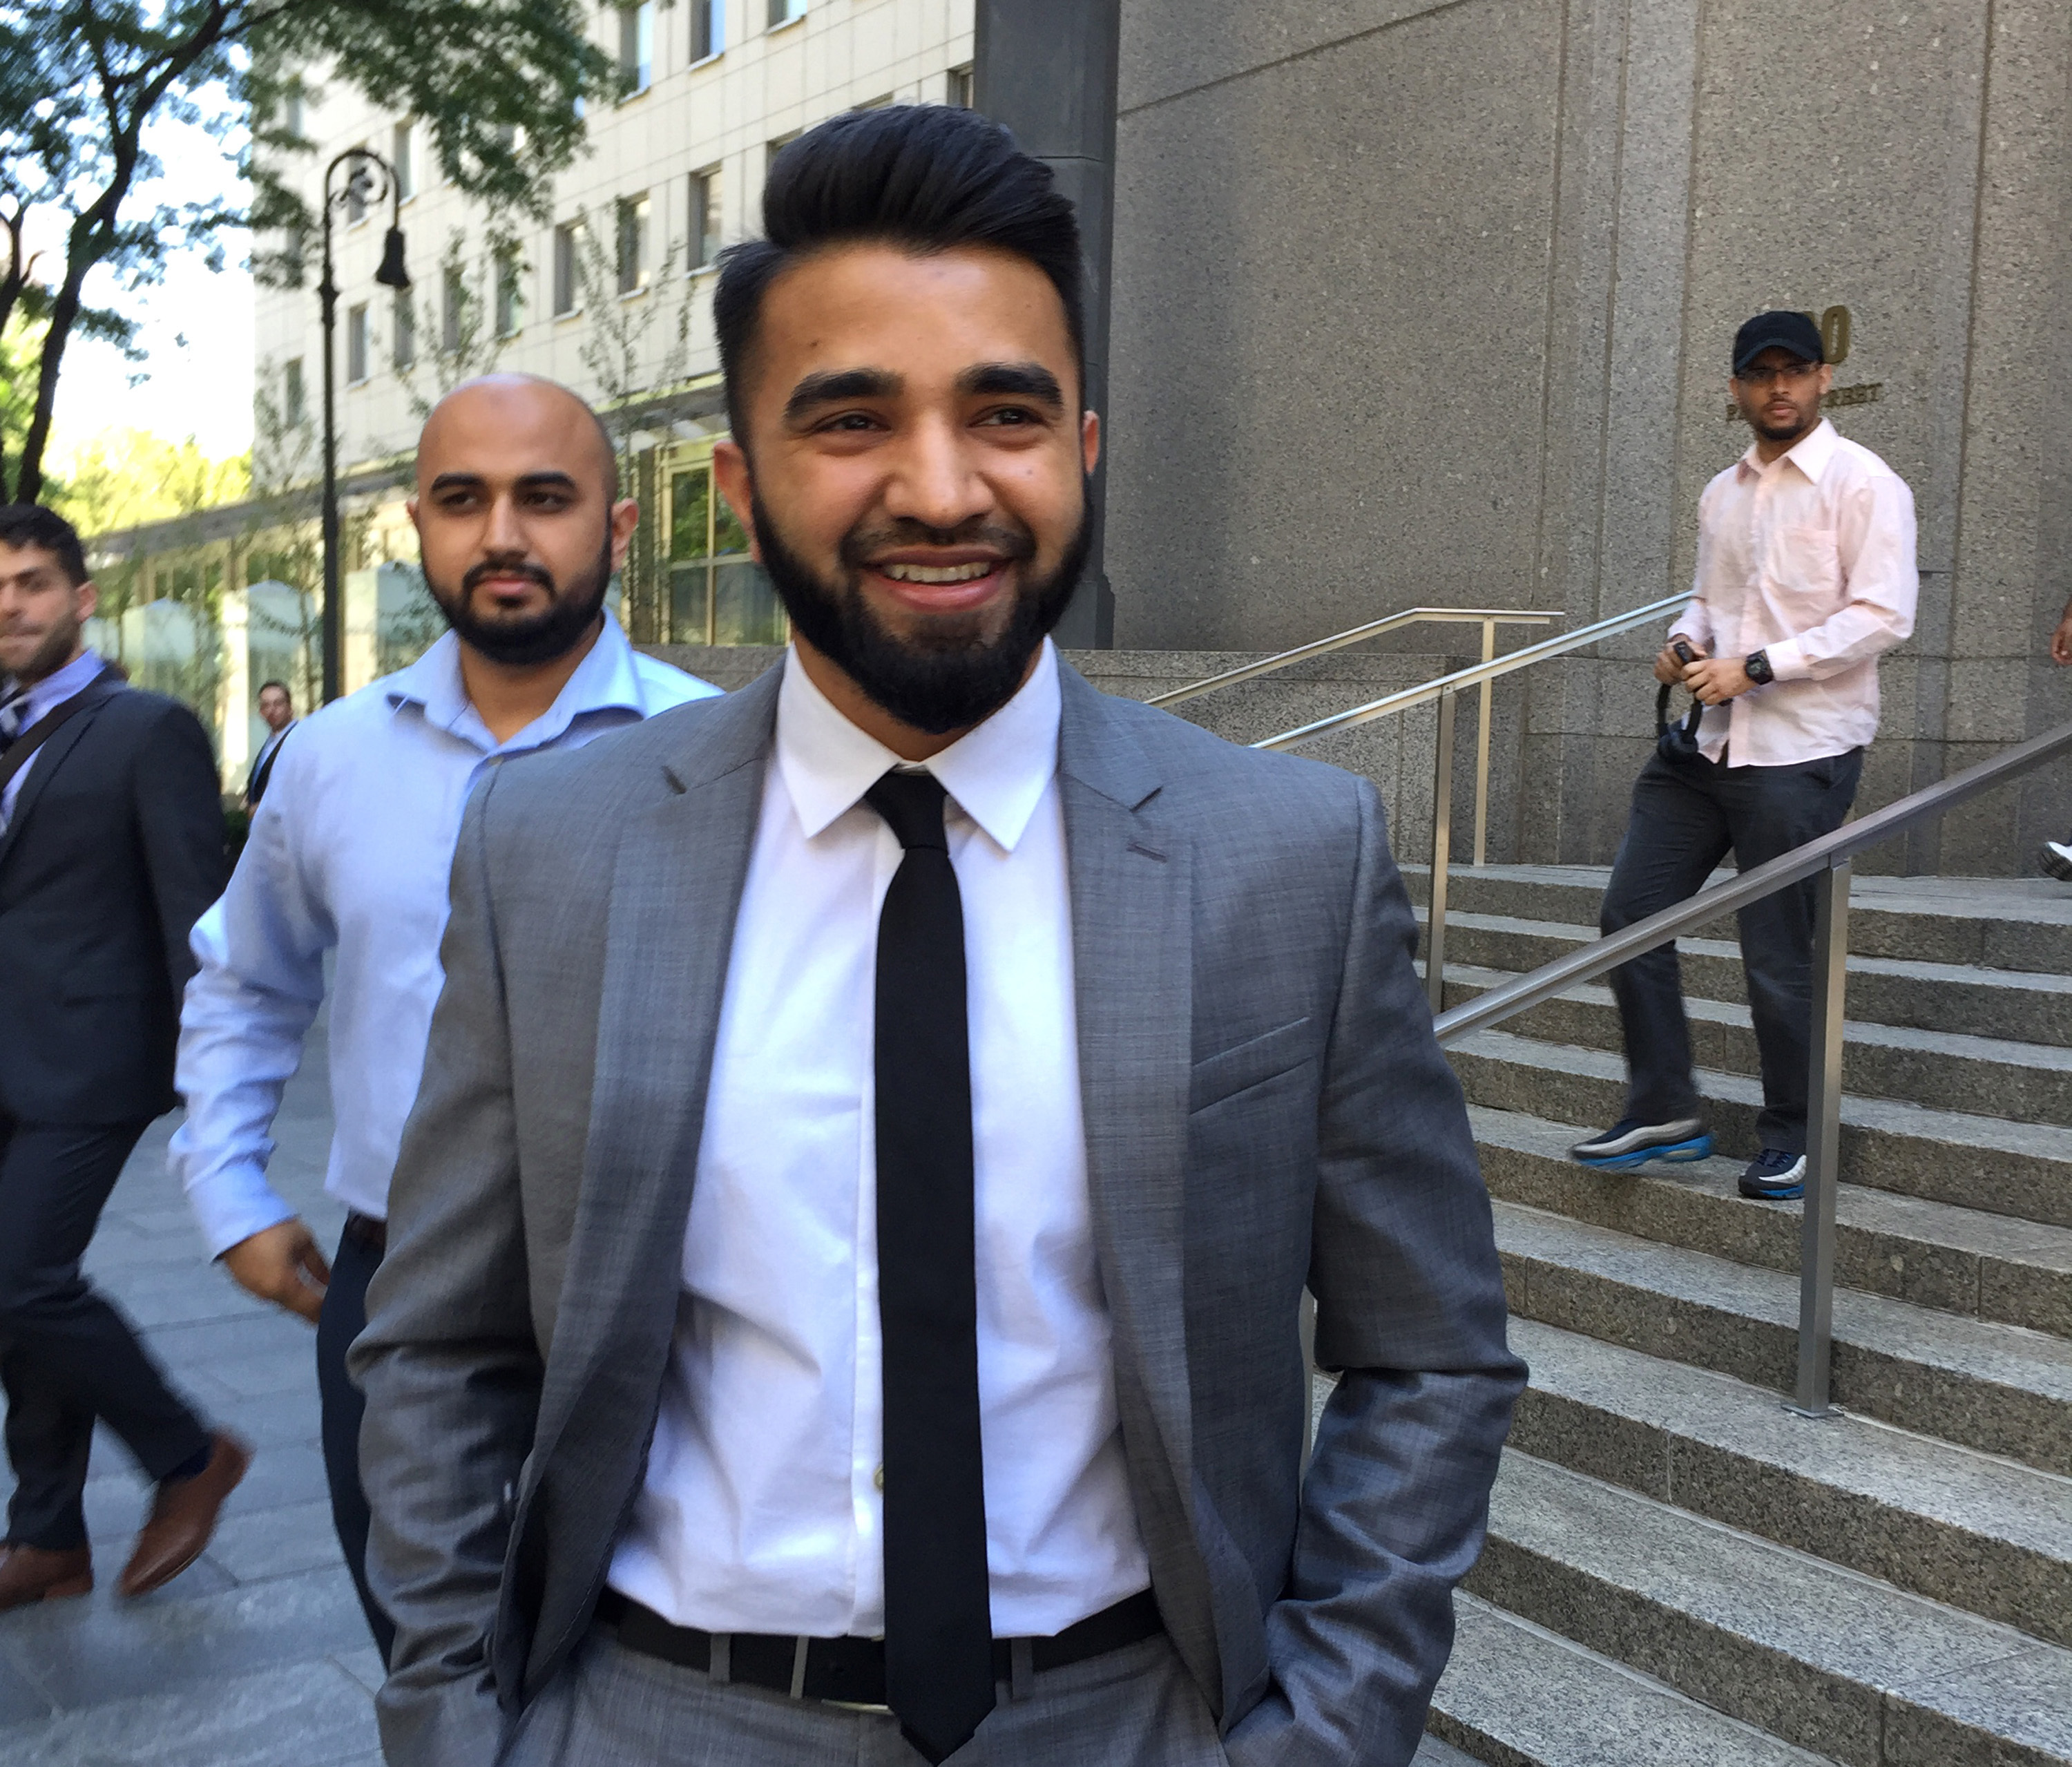 Judge to NYPD: Pay Muslim officer who sued over beard length